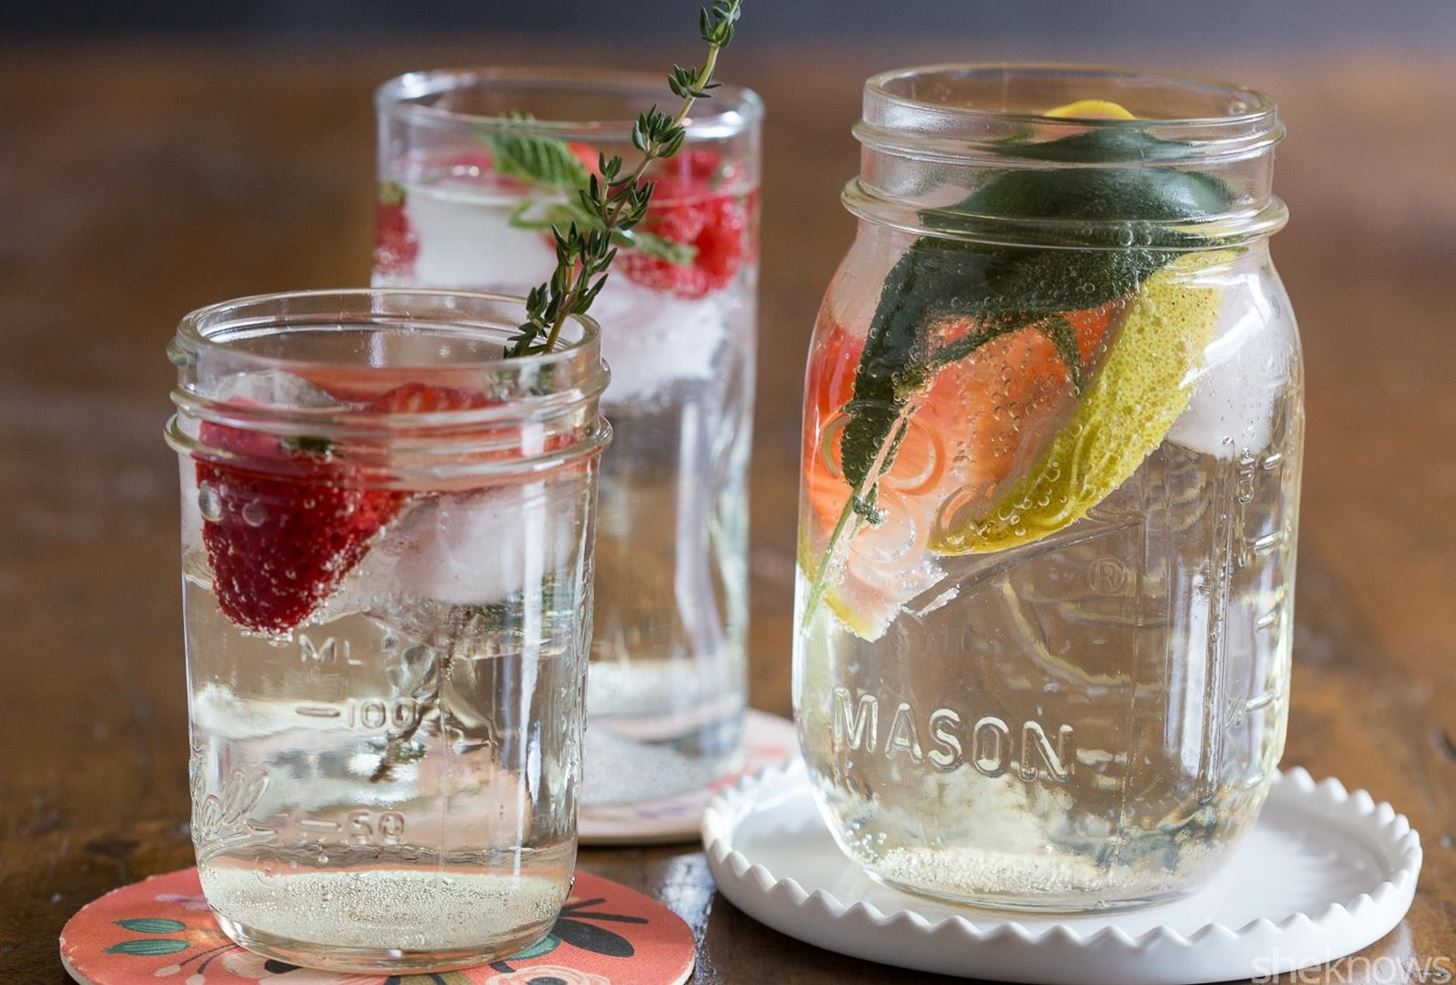 Make Bad Booze Taste Better with These 10 Easy Hacks